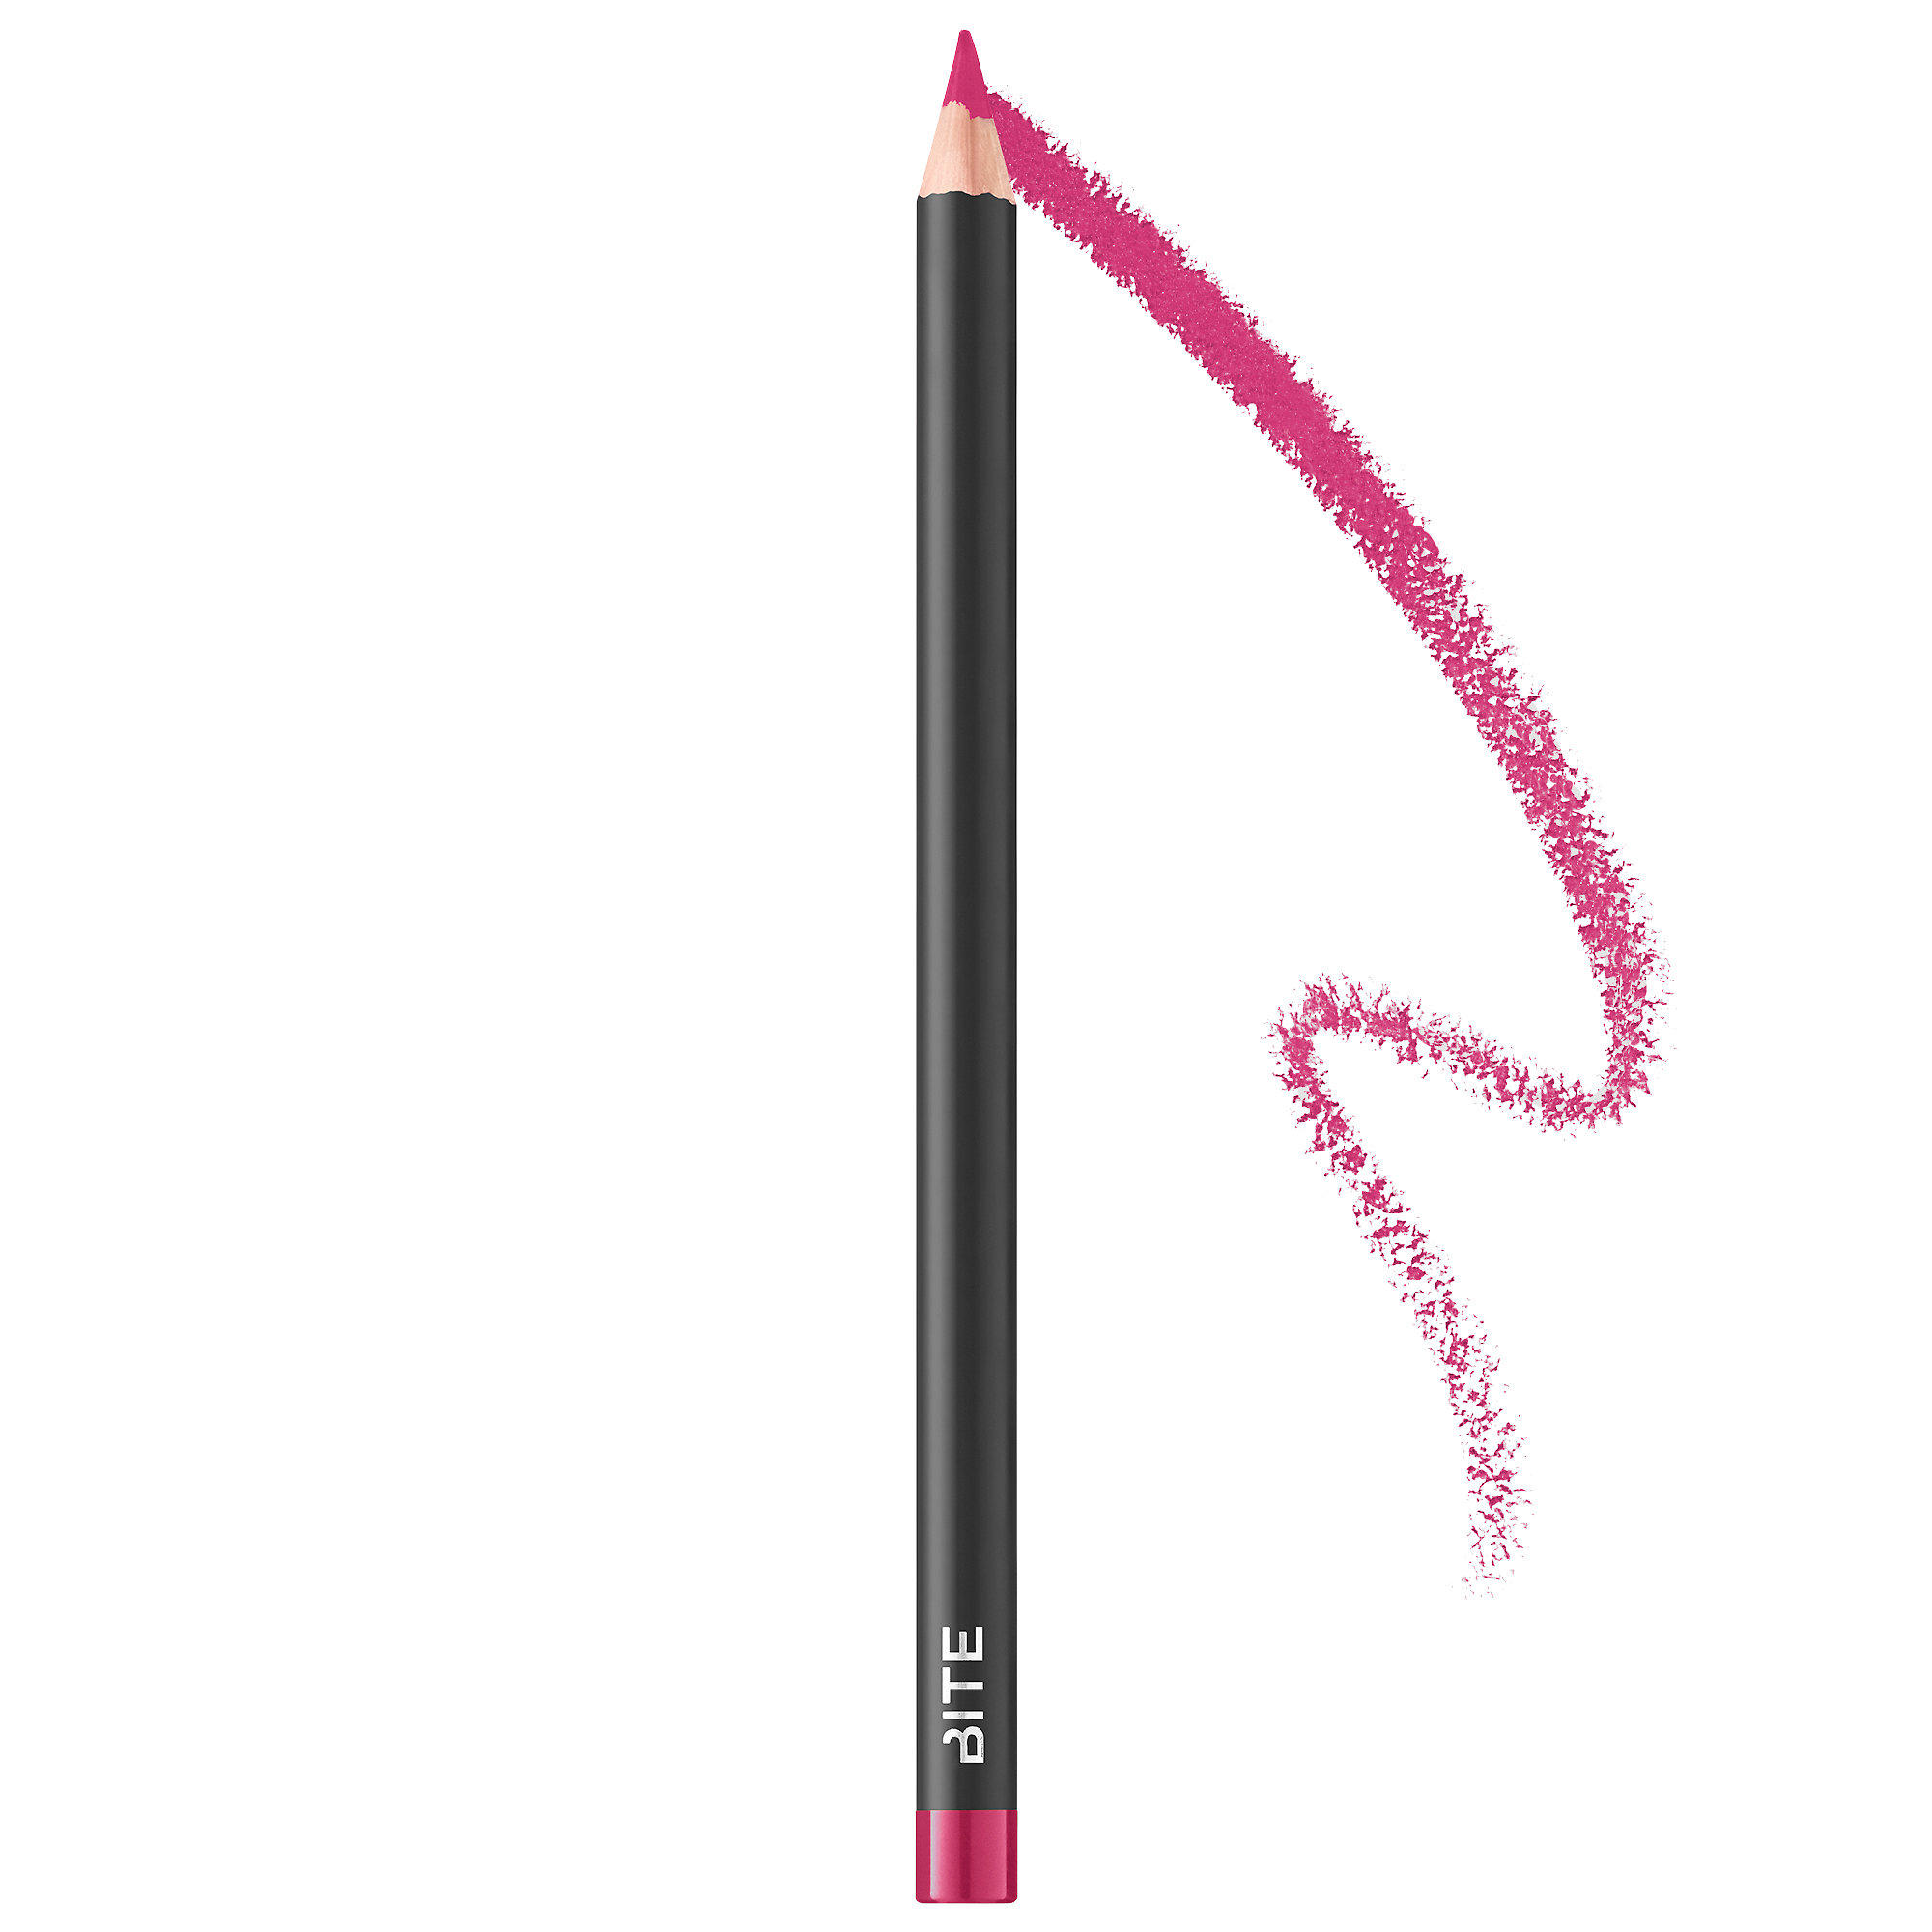 Bite Beauty The Lip Pencil Watermelon 064